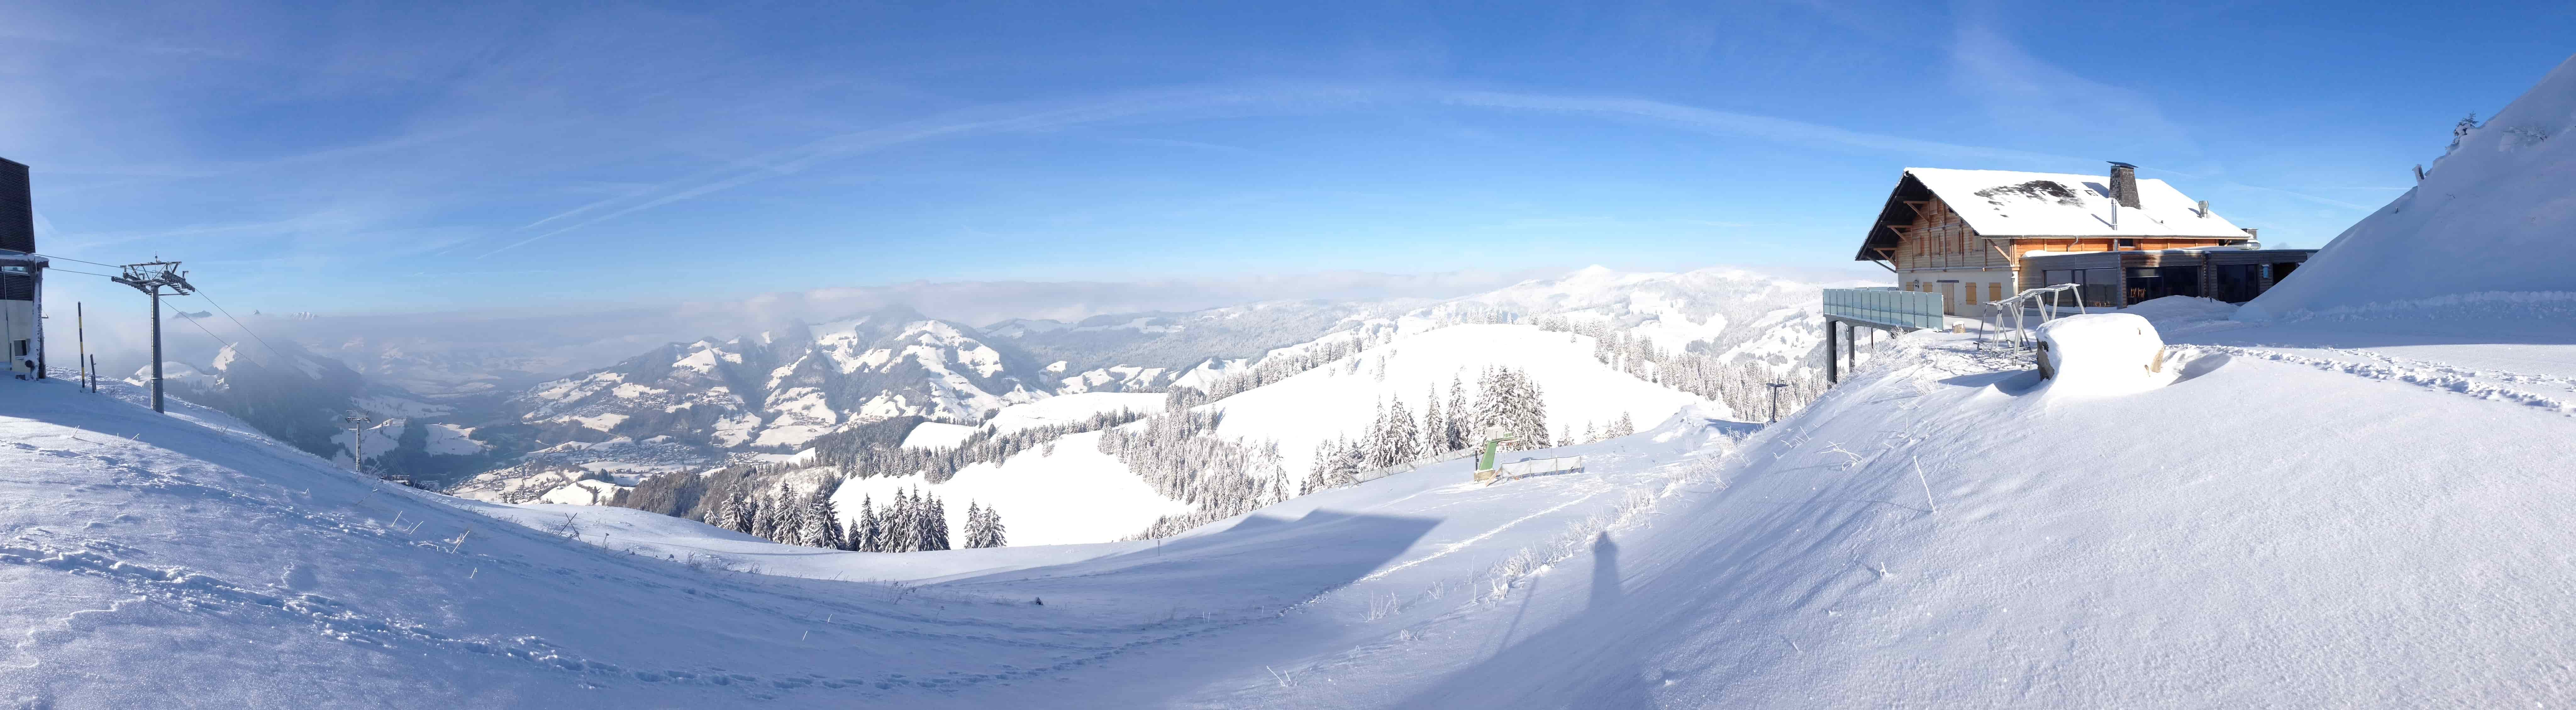 A view of a snowy ski resort